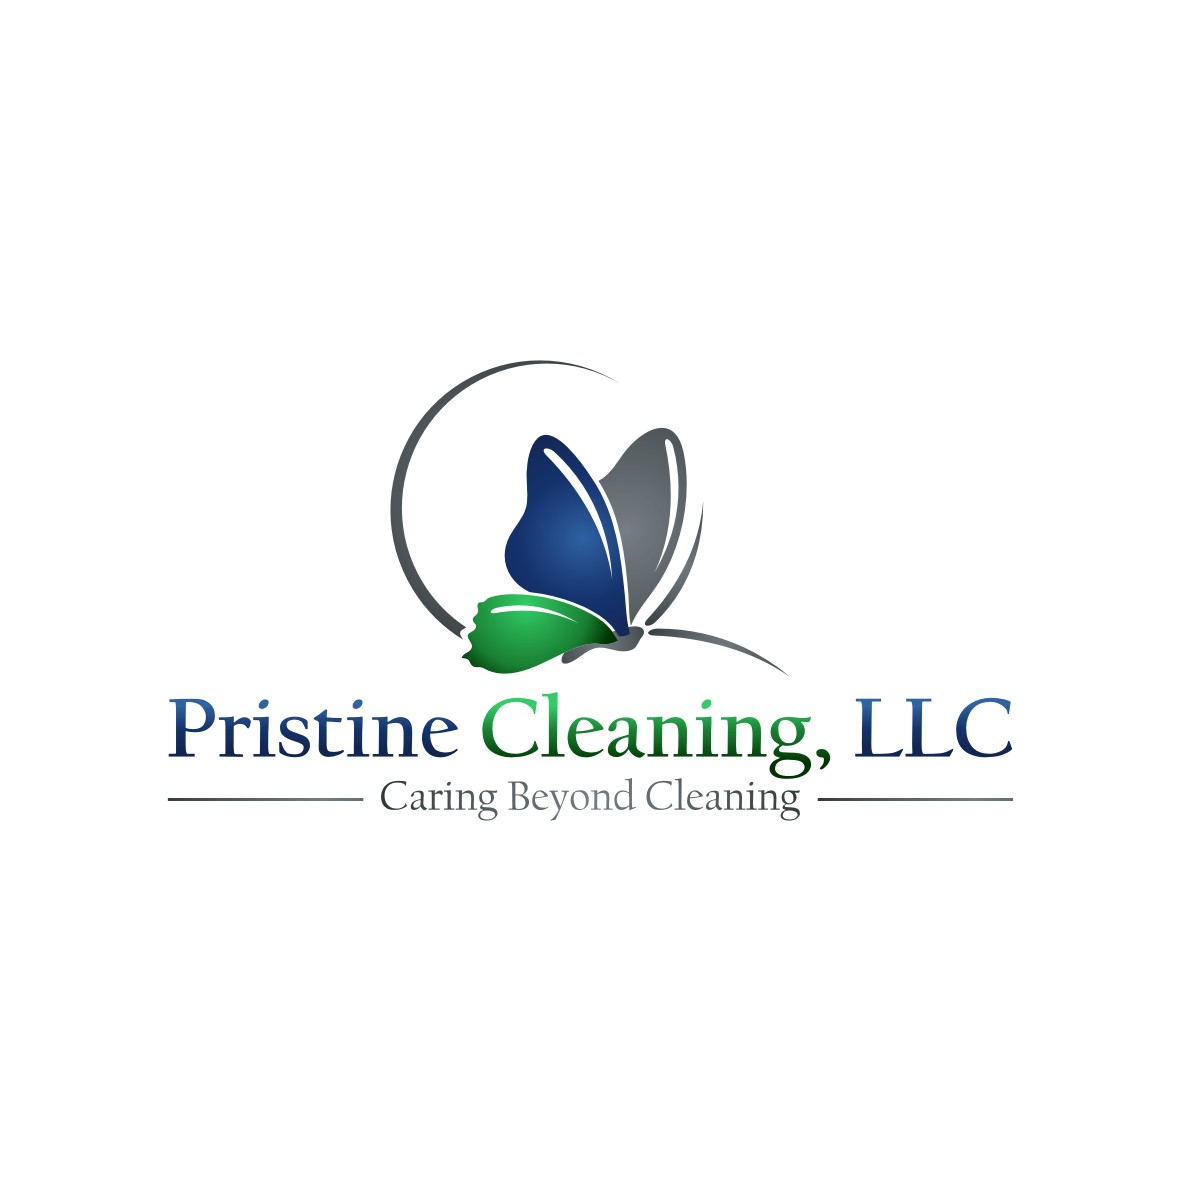 logo for Pristine Cleaning, LLC + more needed after this